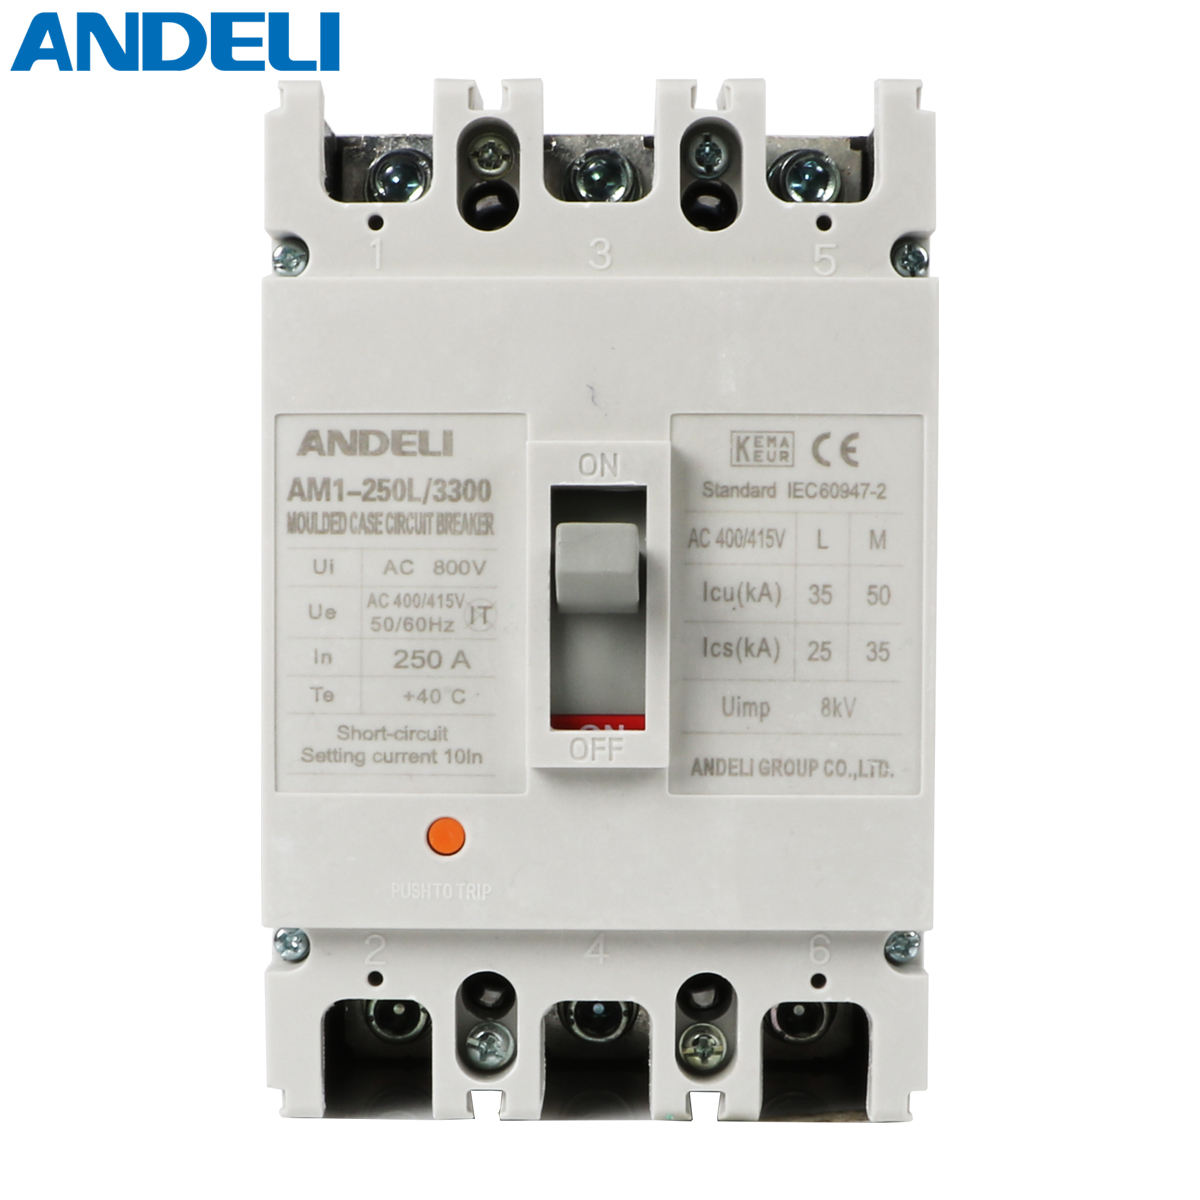 ANDELI AM1-250L/3300 Series Moulded Case Circuit Breaker 160 amp mccb